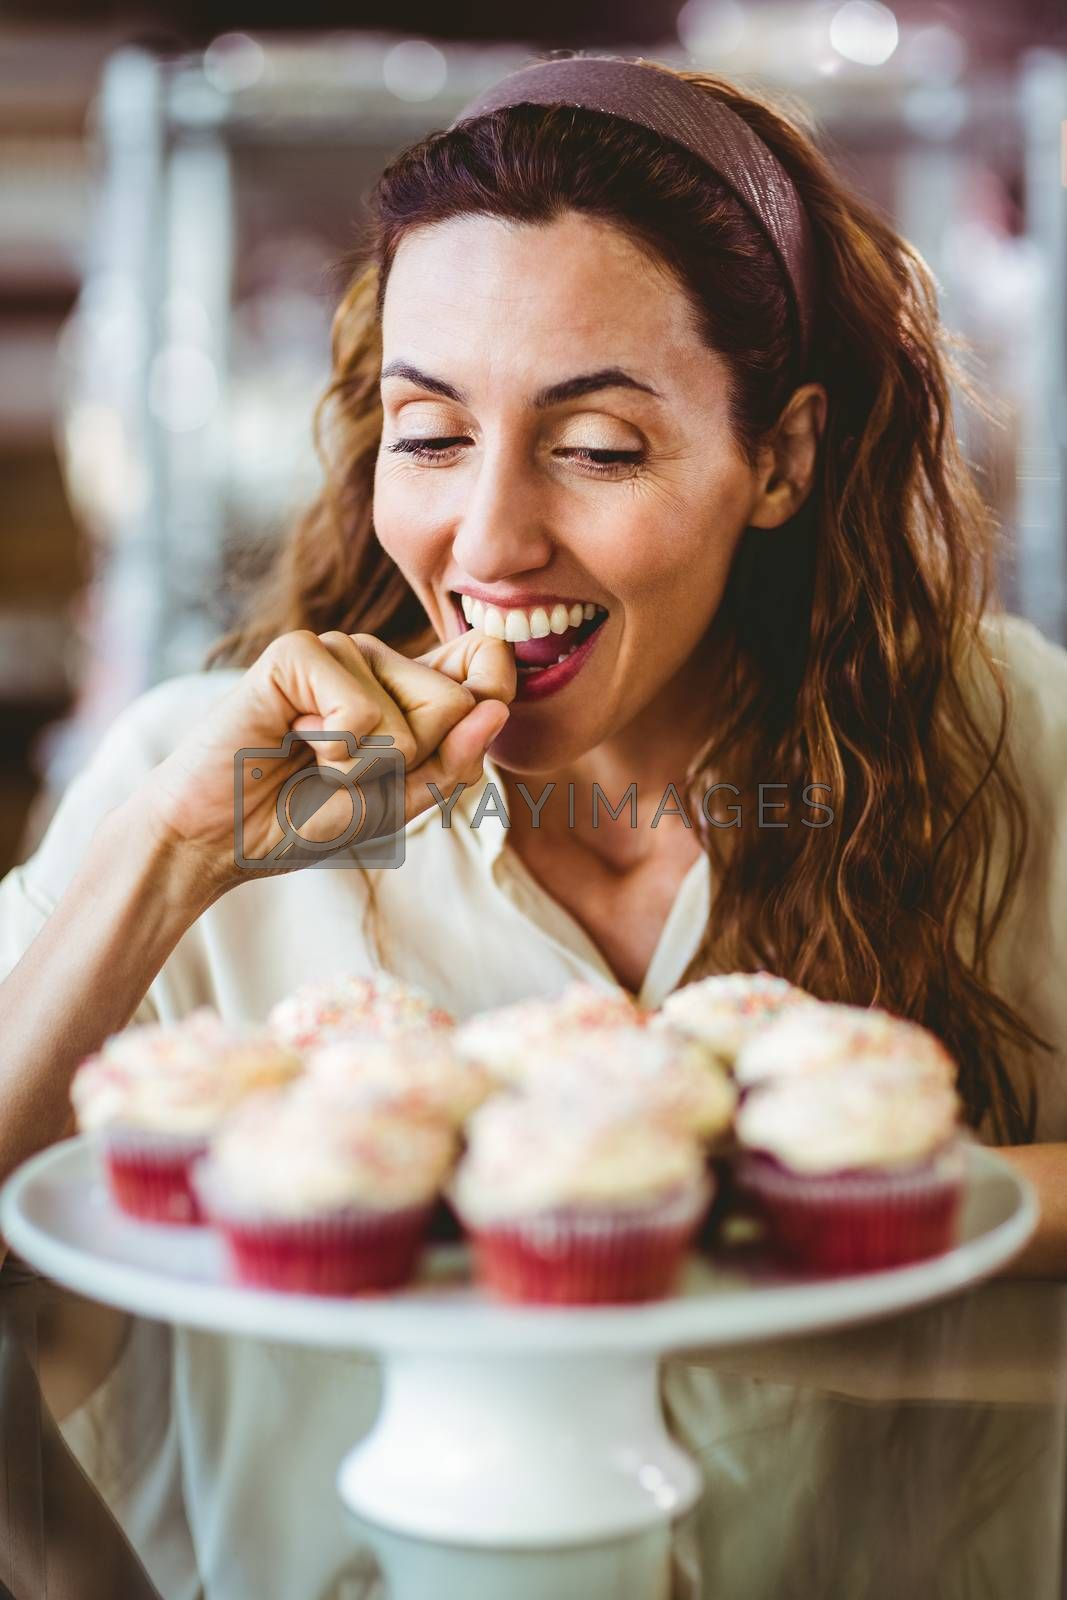 Royalty free image of Pretty brunette looking at cakes by Wavebreakmedia